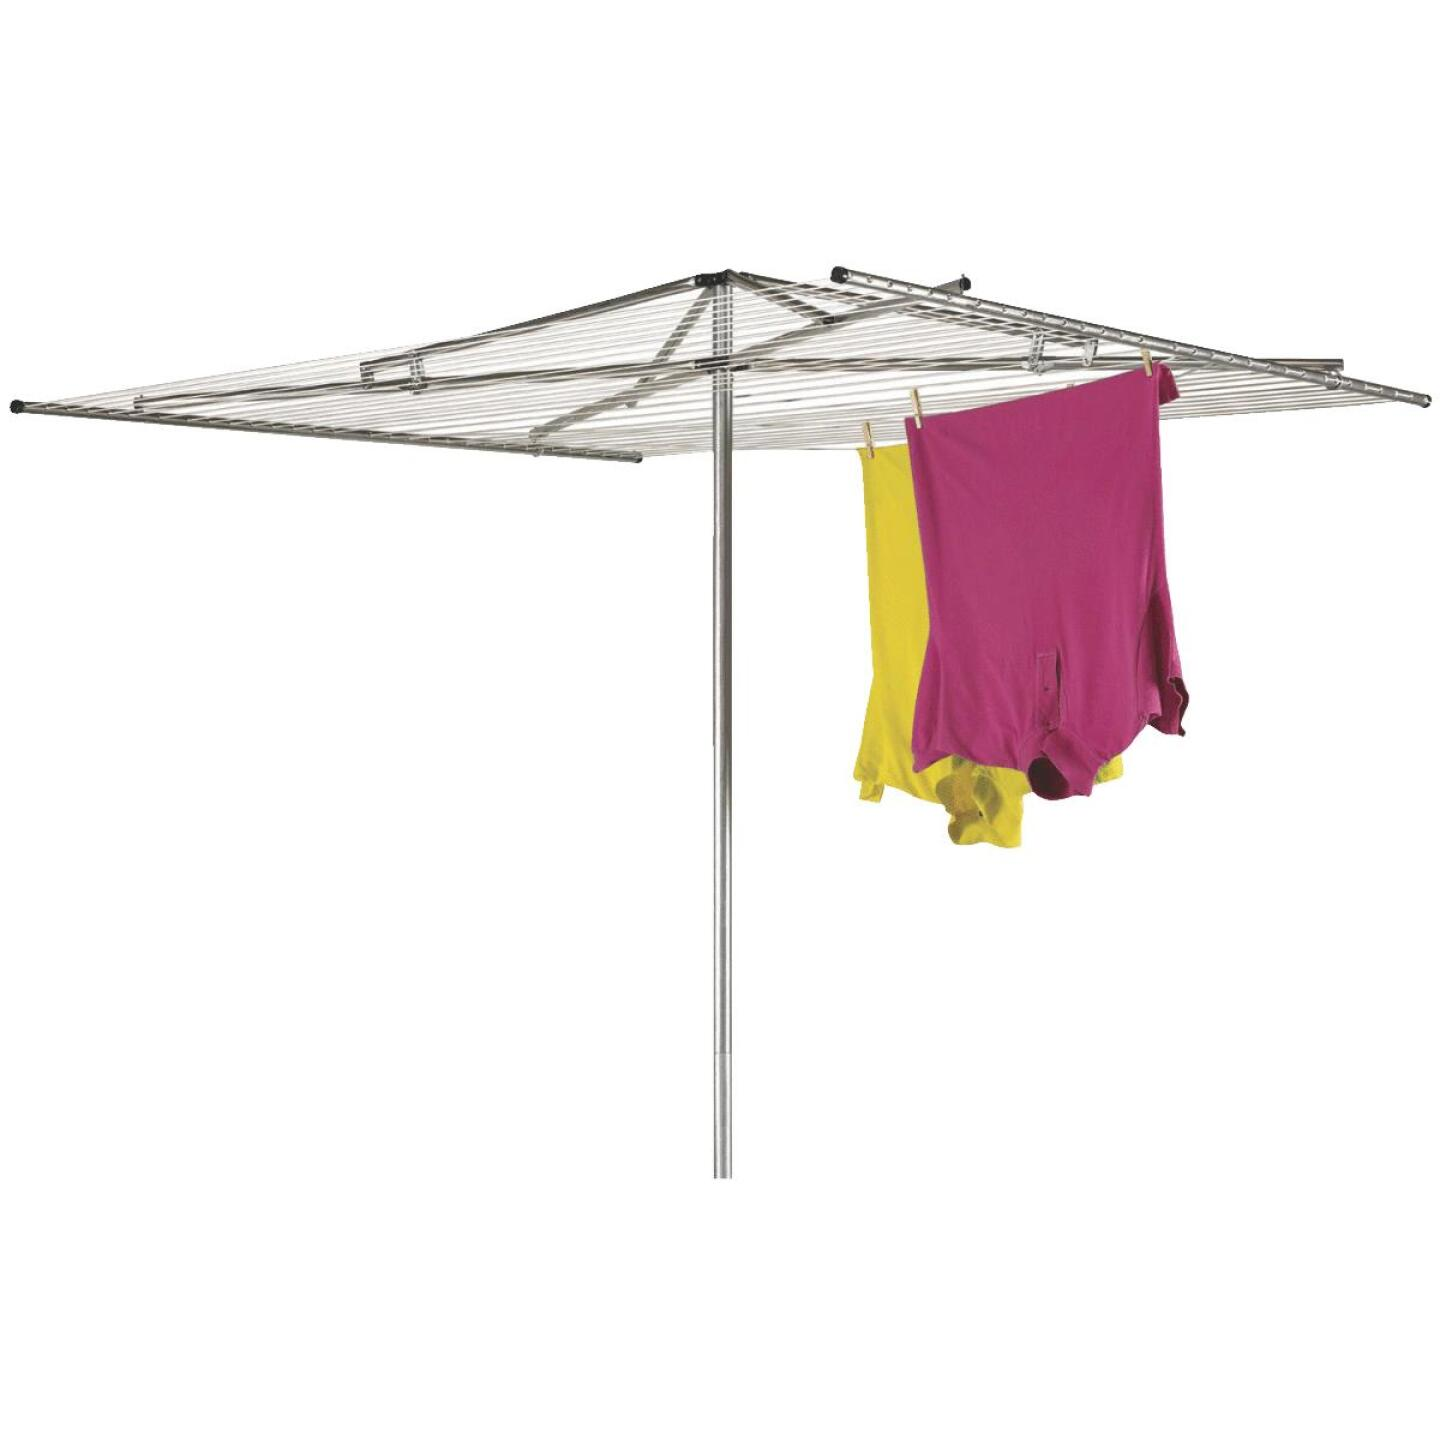 Household Essentials Sunline 72 In. x 72 In. 210 Ft. Drying Area Umbrella Style Clothes Dryer Image 1